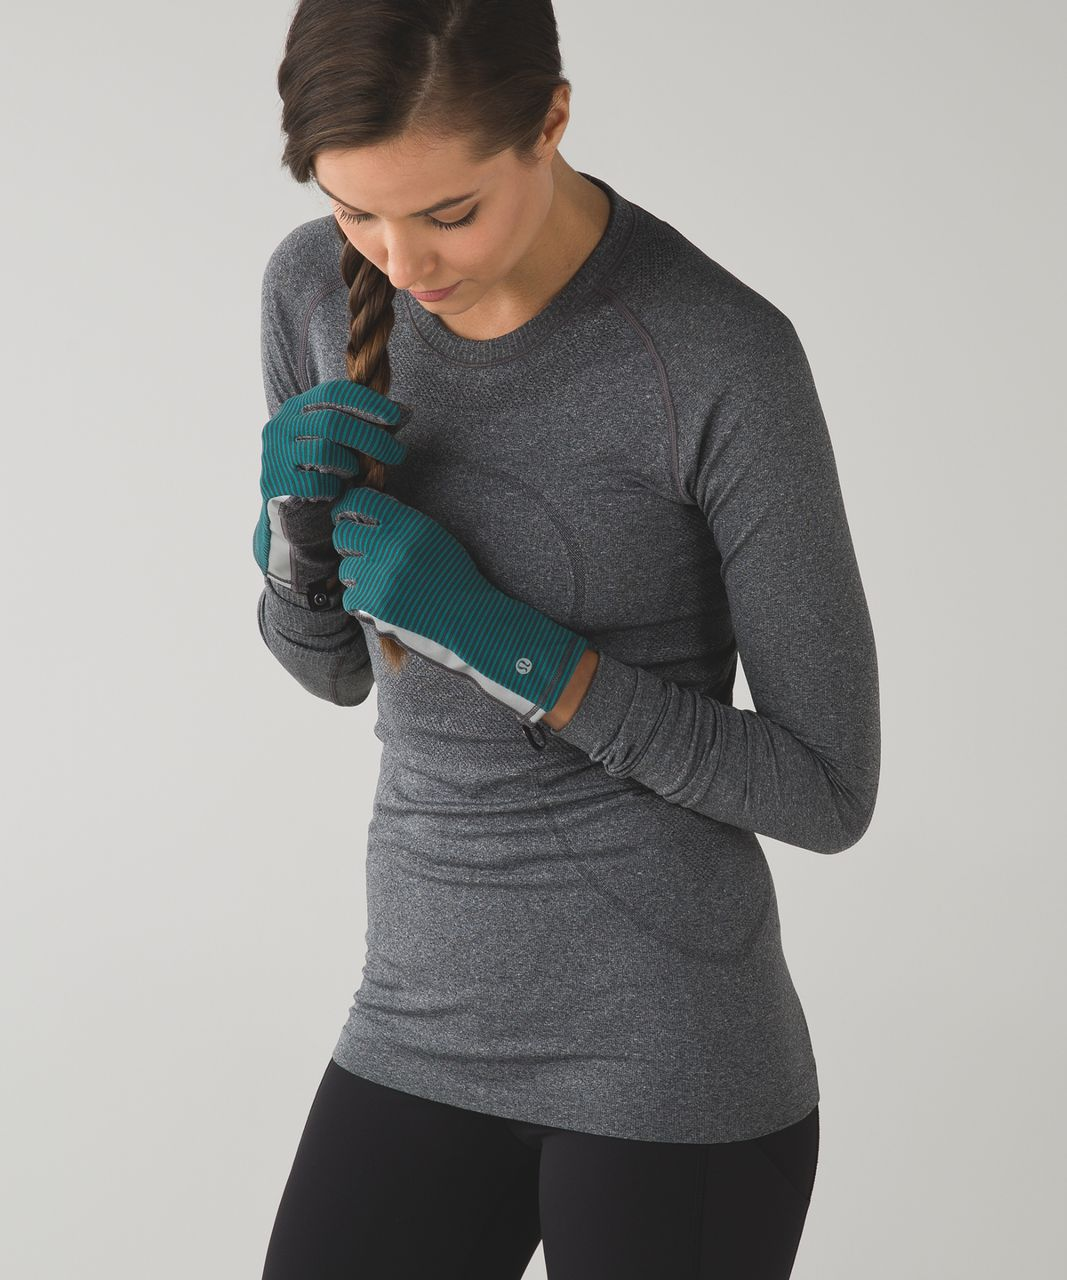 Lululemon Run With Me Gloves - Mini Pop Stripe Dark Fuel Forage Teal / Heathered Black